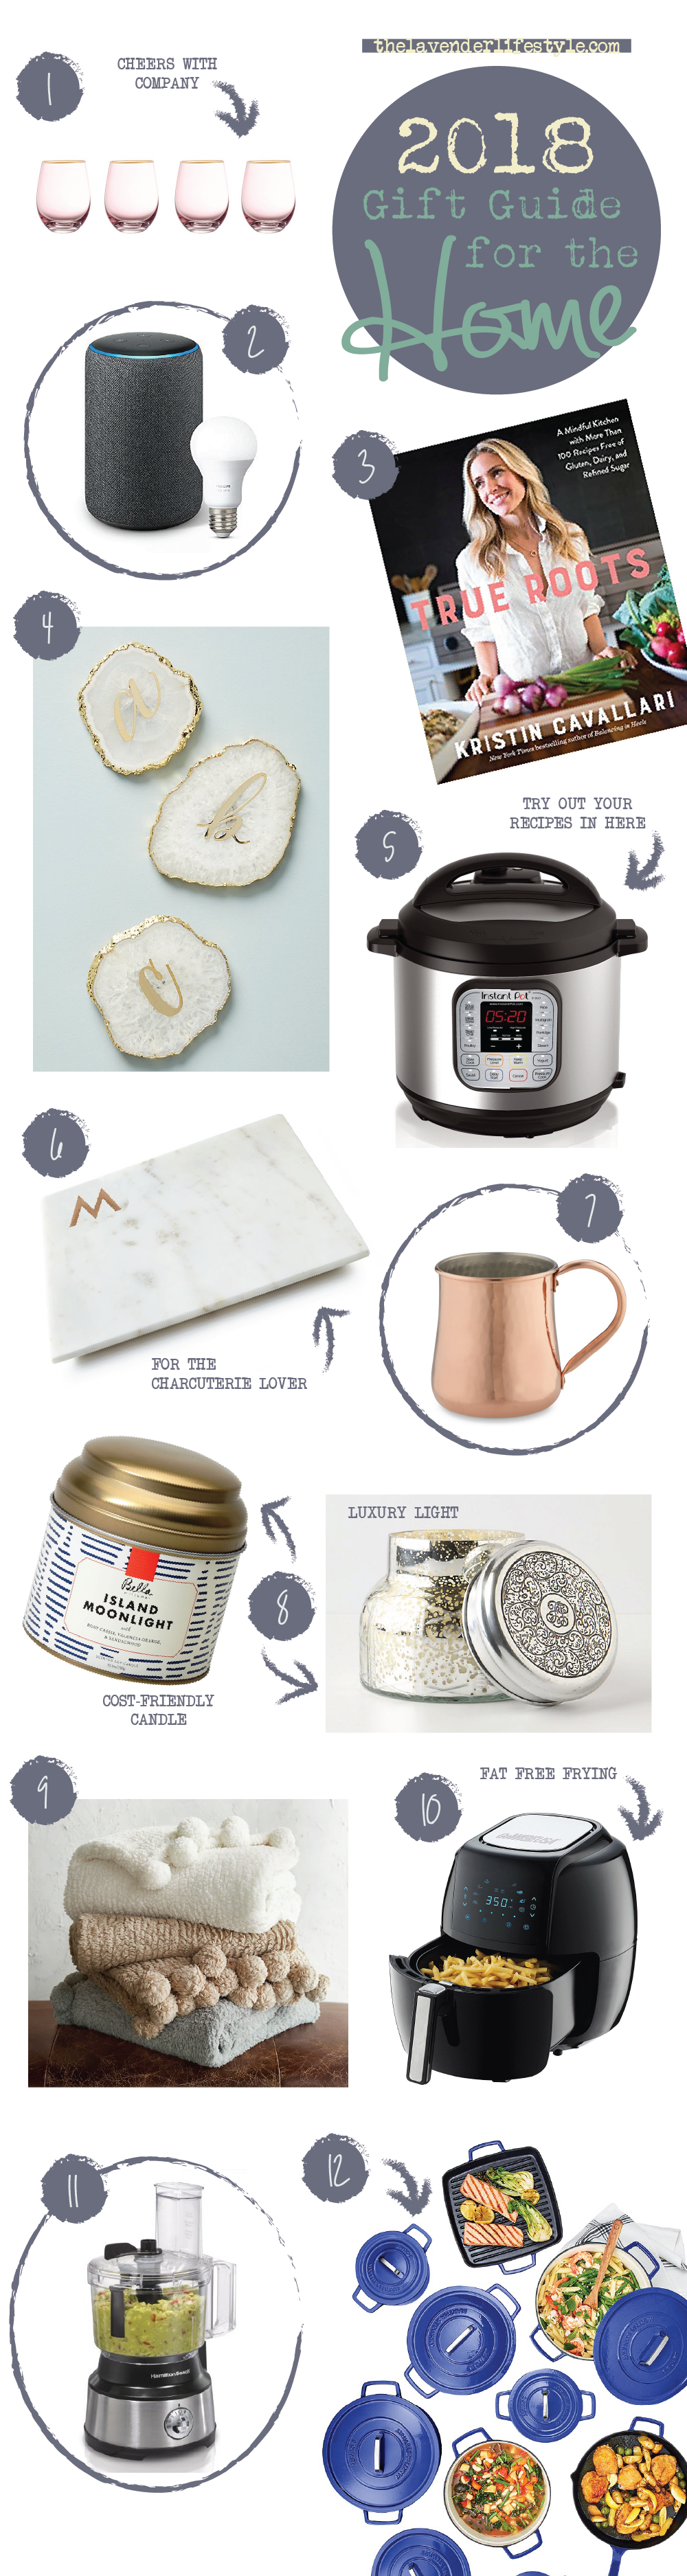 Click to Shop:  1.  Jay Imports Vivienne Stemless Goblets  | 2.  Amazon Echo Plus, 2nd Generation  | 3.  True Roots: A Mindful Kitchen Cookbook  | 4.  Anthropologie Monogram Agate Coaster  | 5.  Instant Pot DUO 7-in-1 Pressure Cooker  | 6.  Williams Somona White Marble Monogram Board  | 7.  Williams Sonoma Hammered Copper Mug  | 8.  Bella by Illume Lidded Tin Jar Candle  -  Cost-Friendly Candle   OR   Anthropologie Capri Blue Volcano Jar Candle  -  Luxury Light  | 9.  Pottery Barn Cozy Pom Pom Throw  | 10.  GoWISE USA Electric Air Fryer  | 11.  Hamilton Beach Food Processor & Vegetable Chopper  | 12.  Martha Stewart Cast Iron Cookware Collection